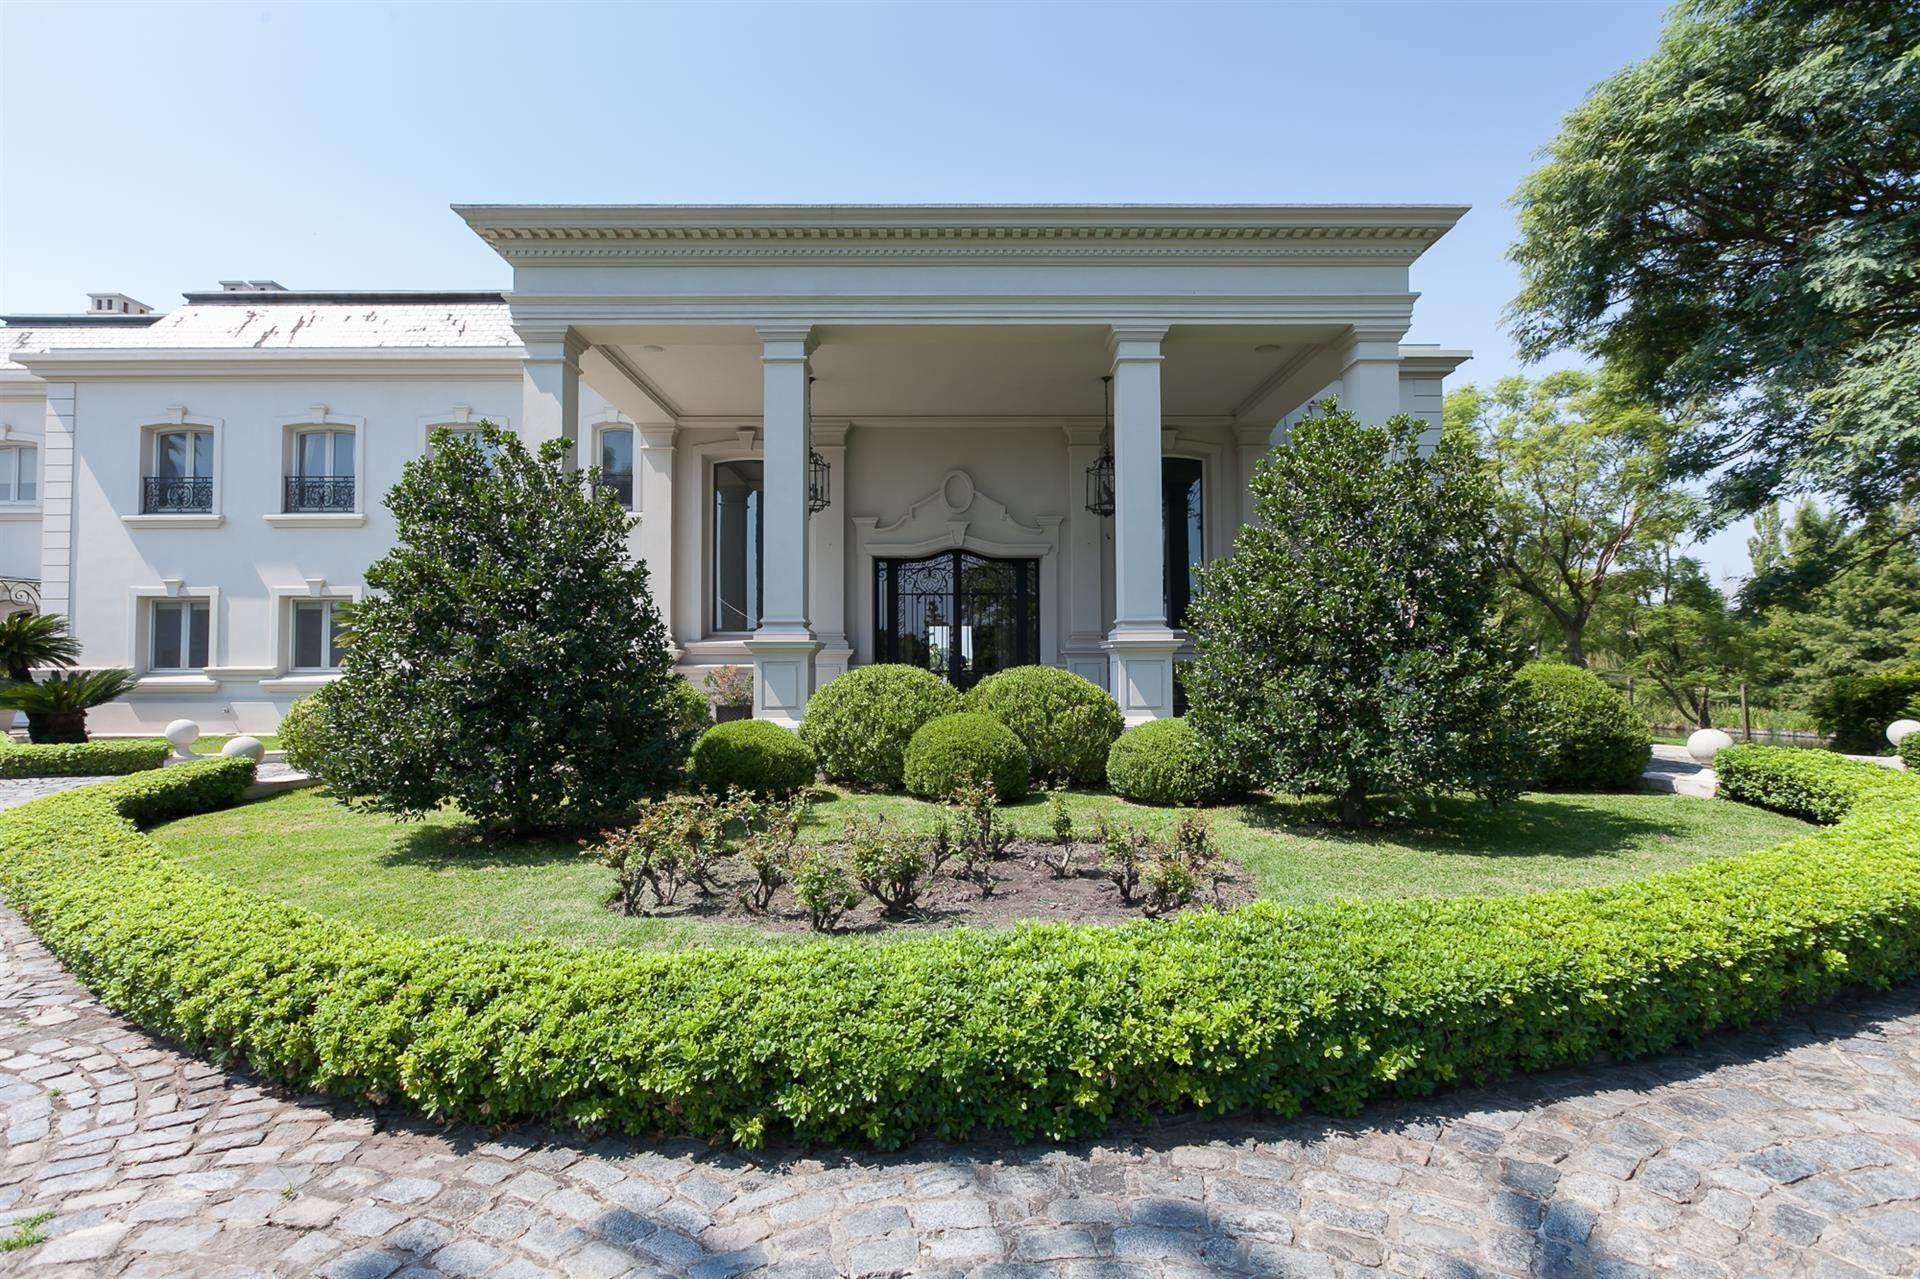 Single Family Home for Sale at Incredible house in La Isla, Nordelta Tigre, Argentina